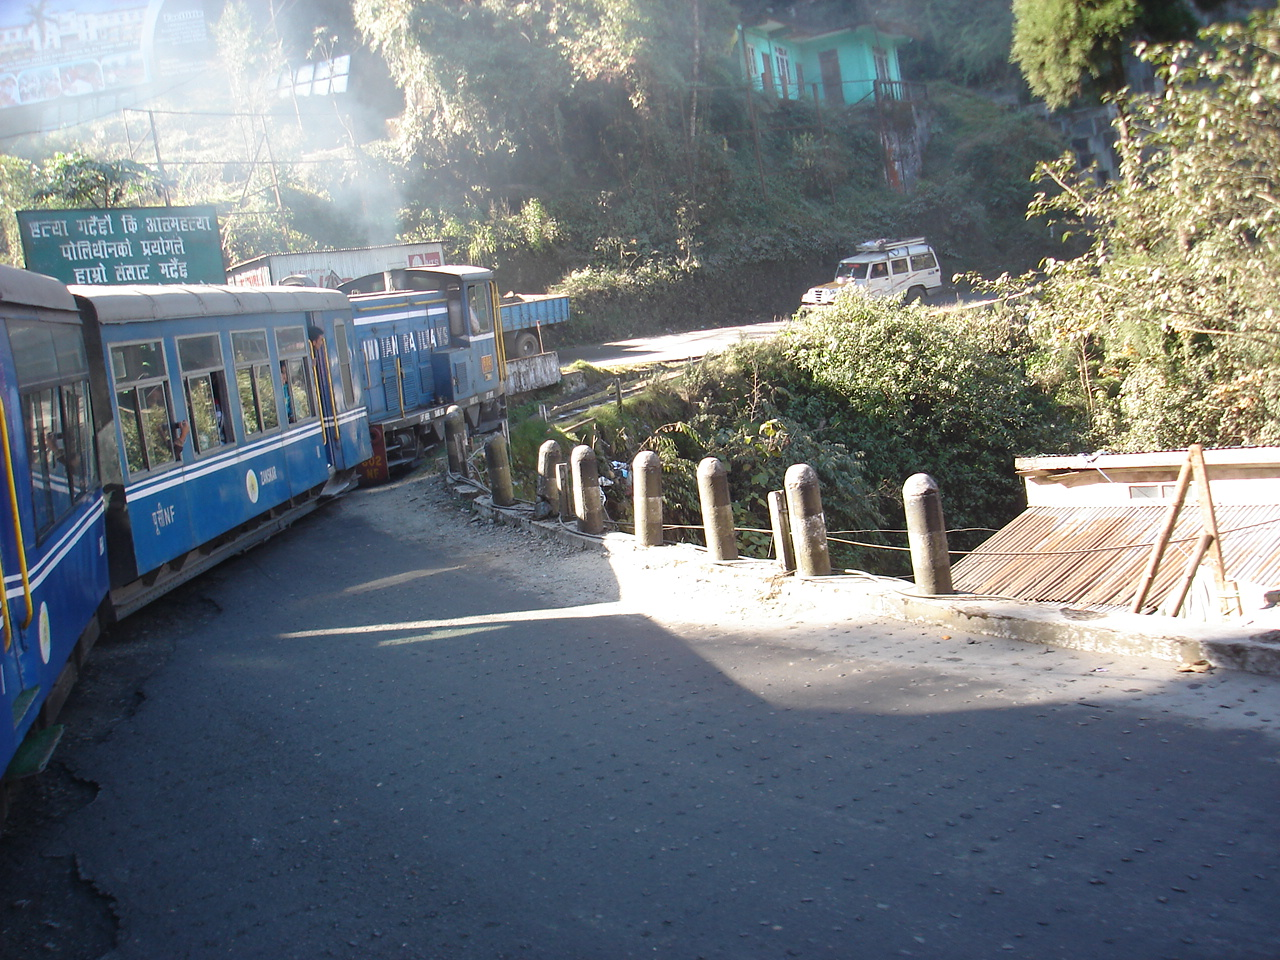 The Kanchenjunga, the queen and the marvelous Toy Train